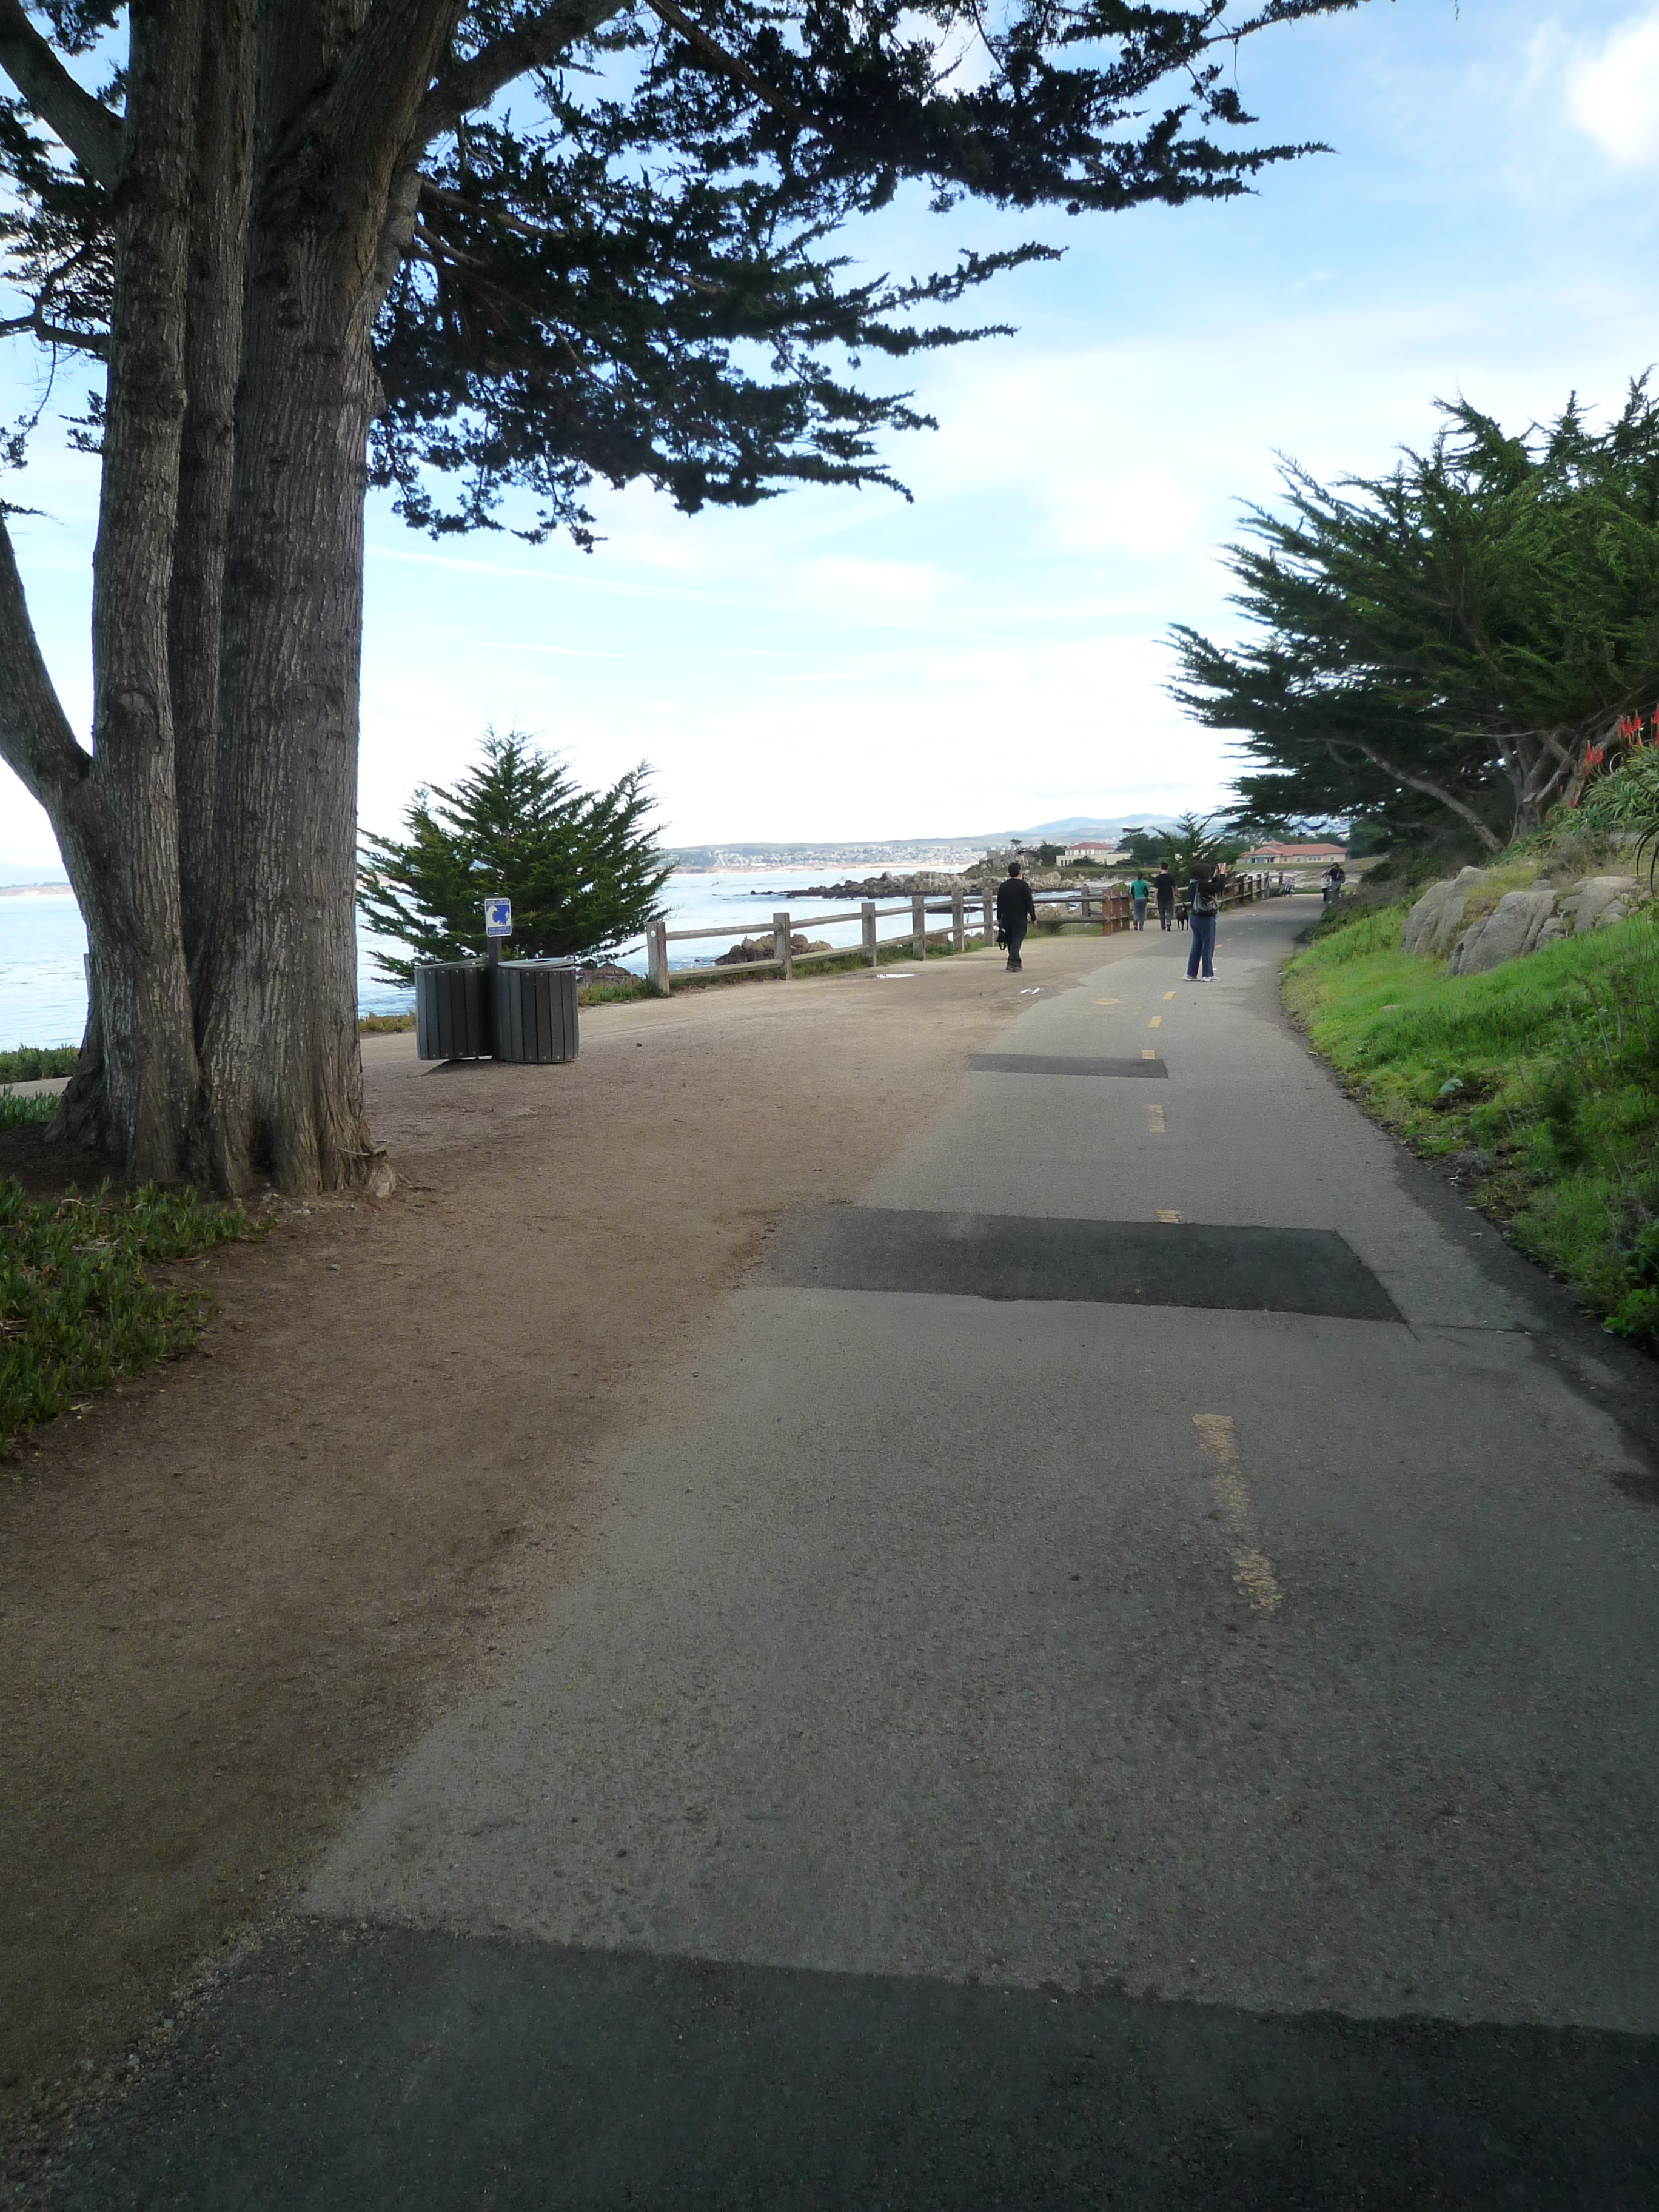 Caption: Monterey Bay Recreational Trail